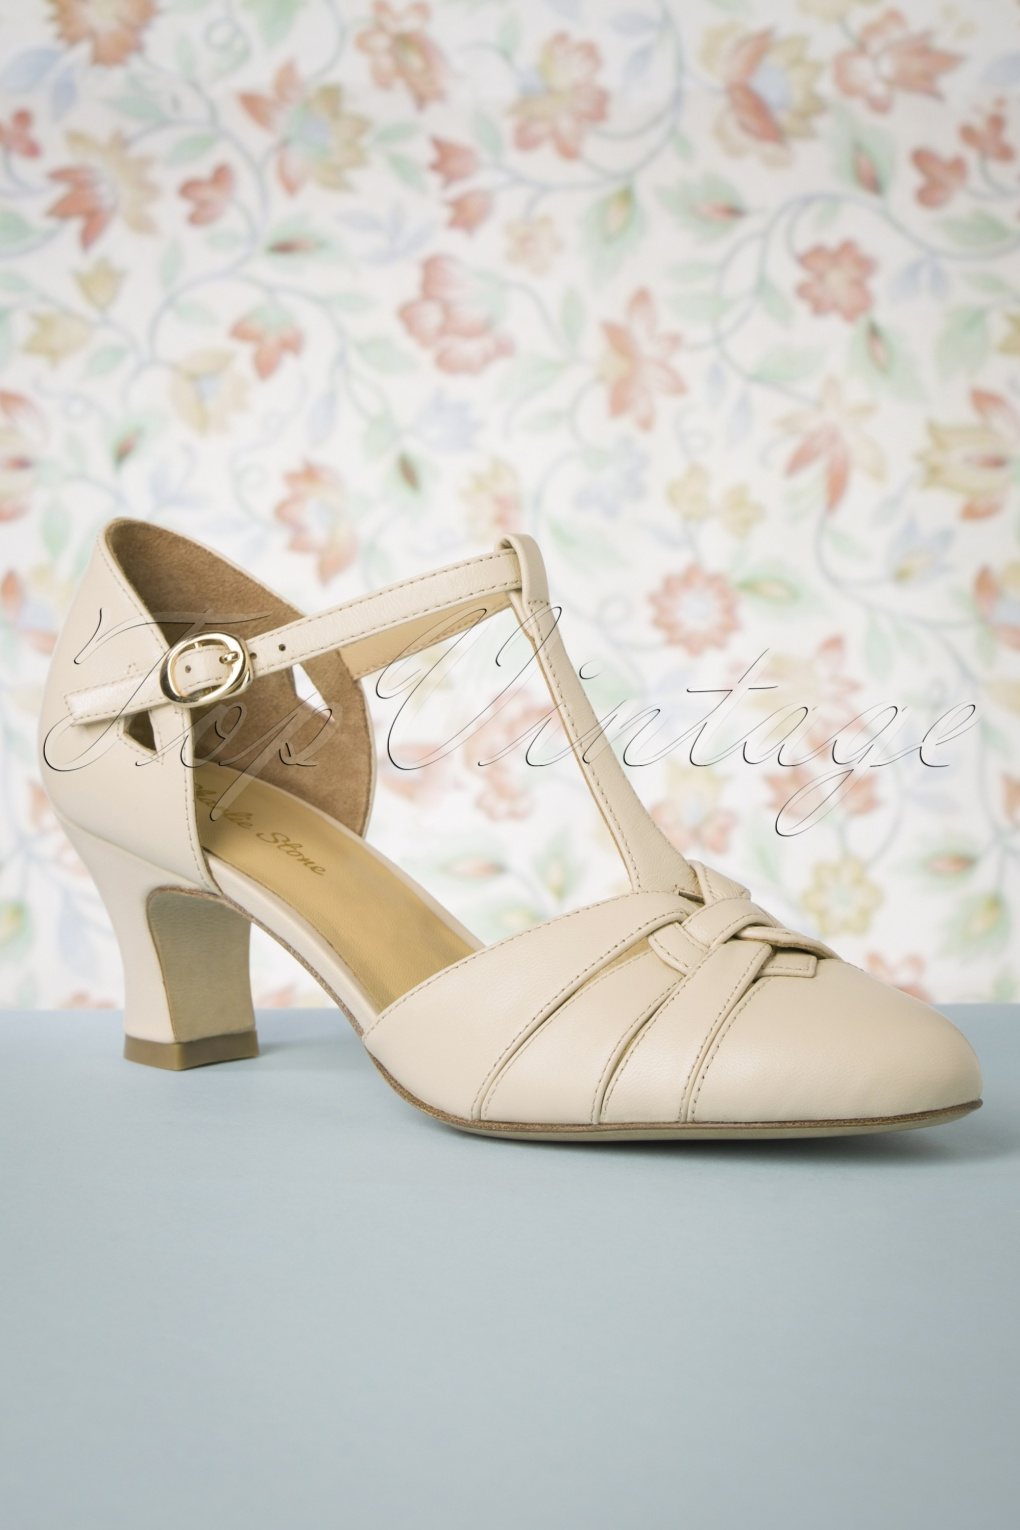 1920s Style Shoes 50s Montpellier T-Strap Pumps in Cream £148.34 AT vintagedancer.com